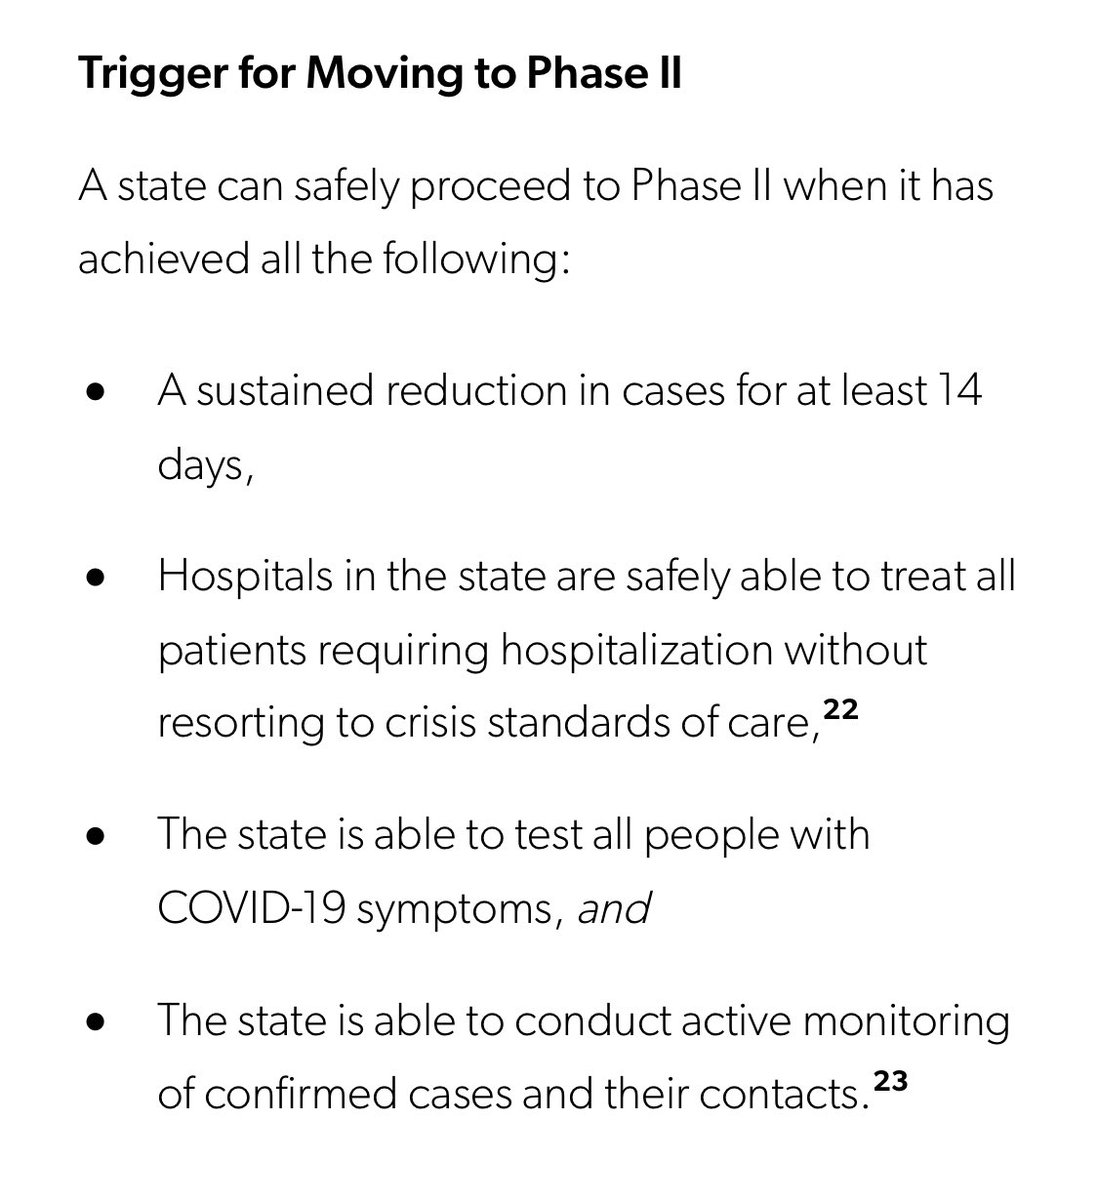 They list the triggers for moving to phase 2. 6/